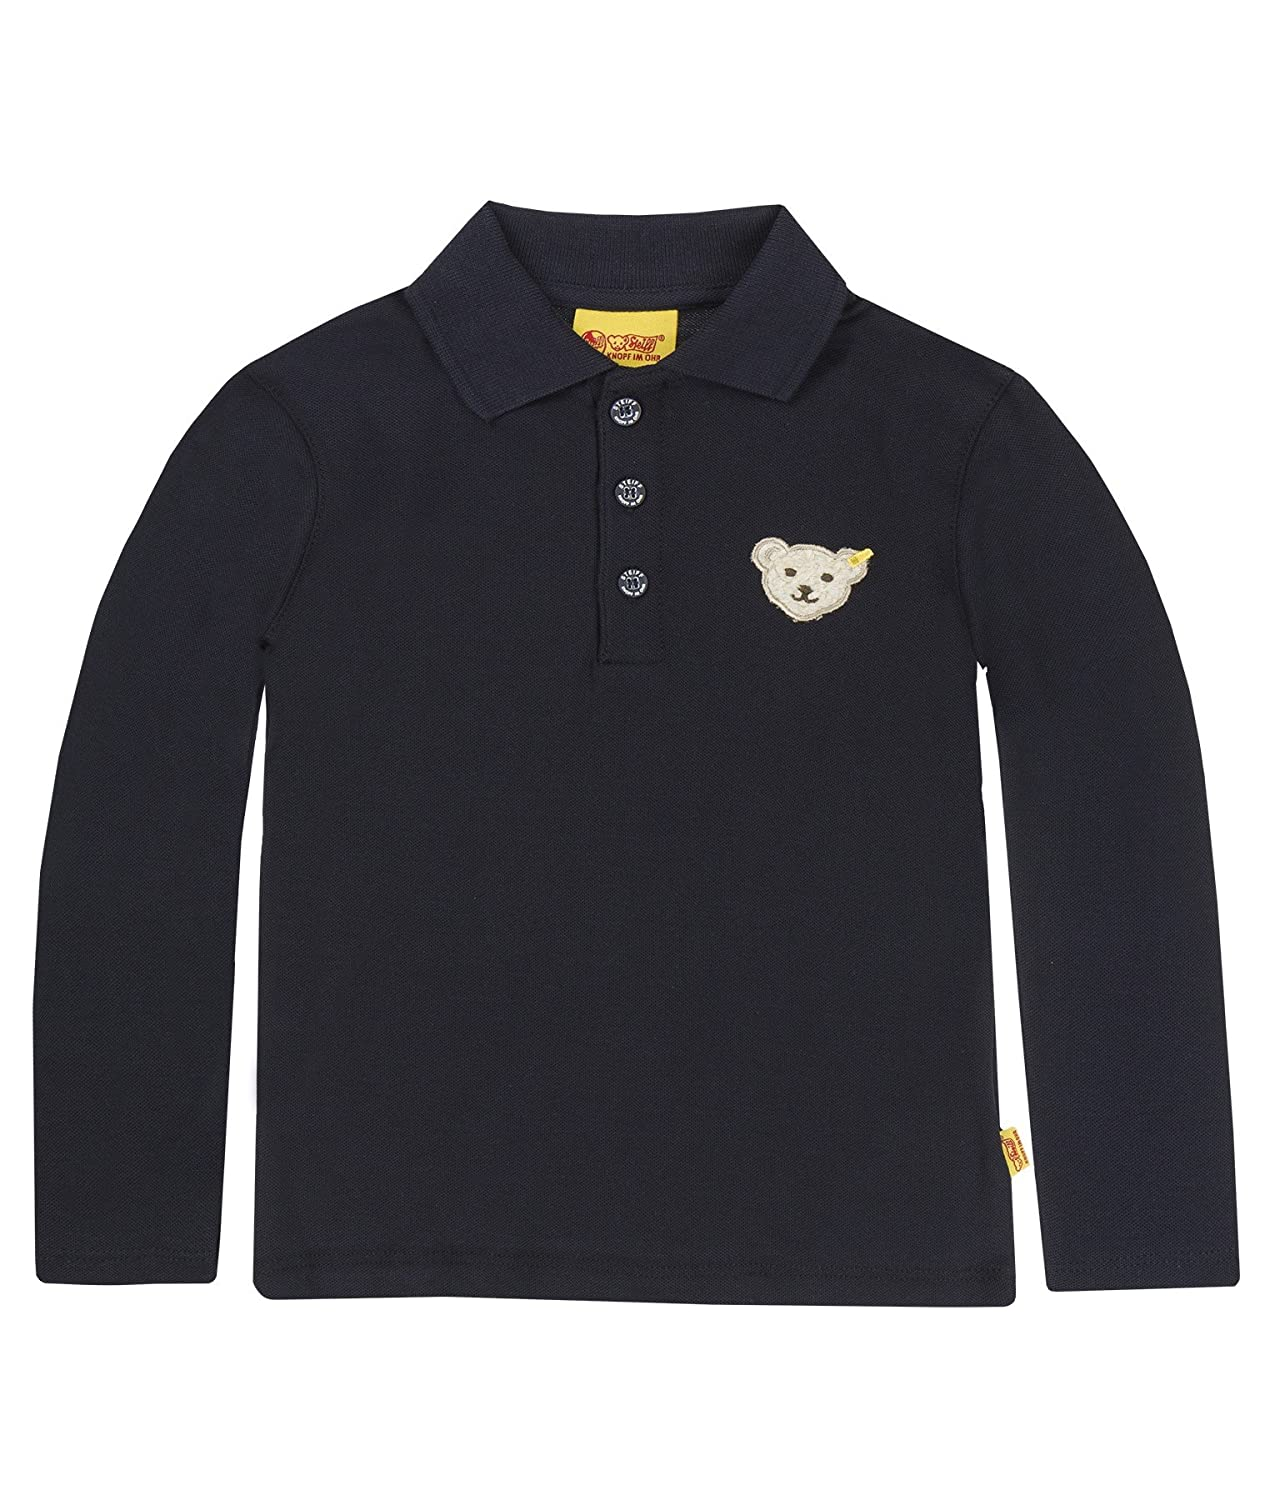 Steiff 0006831 Polo Shirt 1/1 Sleeves, Polo per bambini e ragazzi Steiff Collection